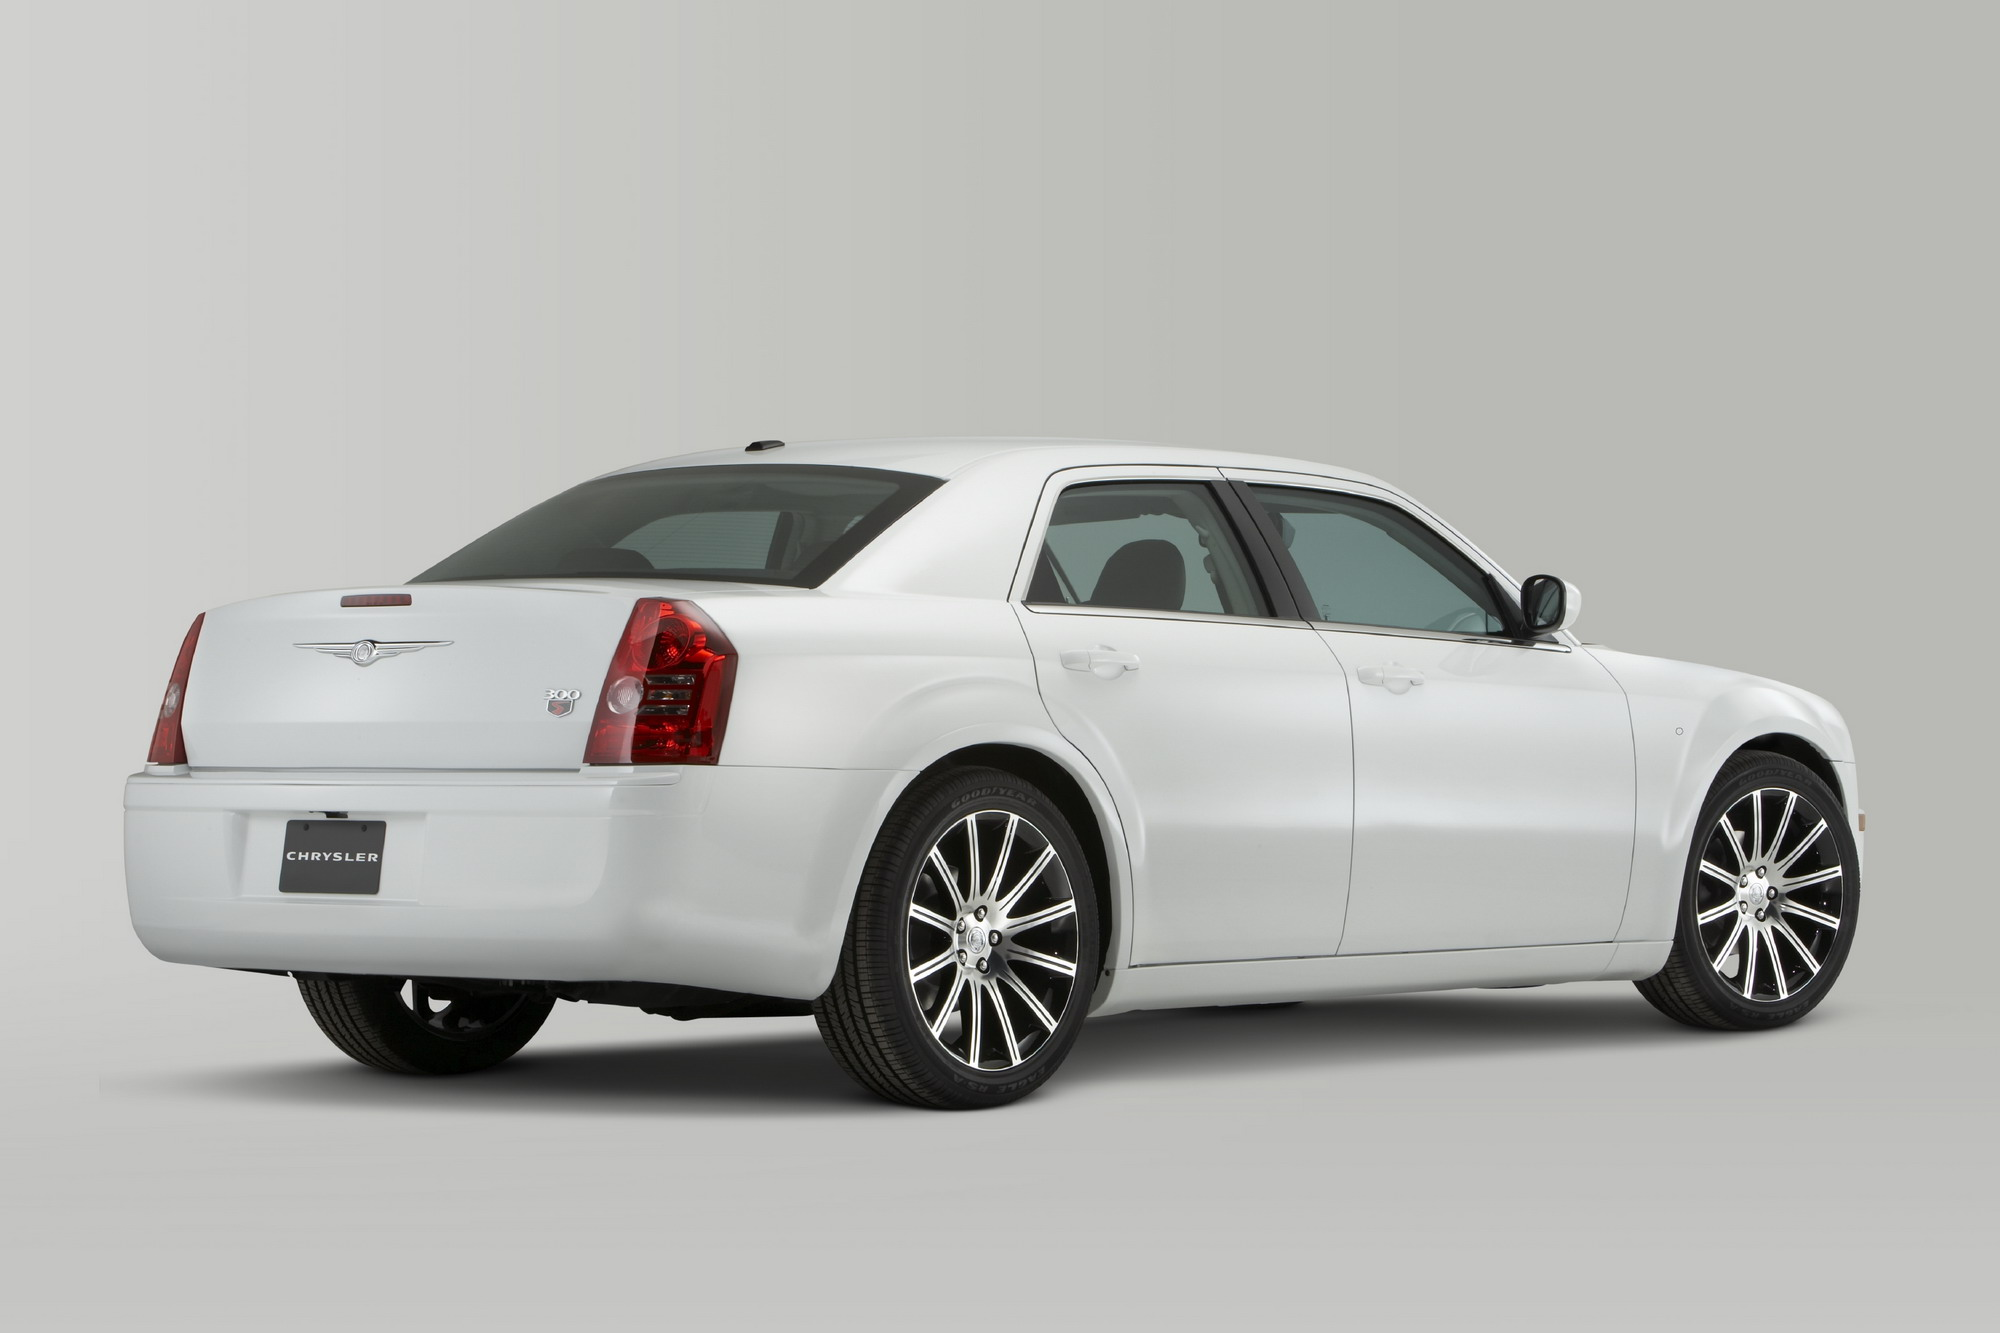 2010 chrysler 300 s6 and 300 s8 gallery 341298 top speed. Black Bedroom Furniture Sets. Home Design Ideas